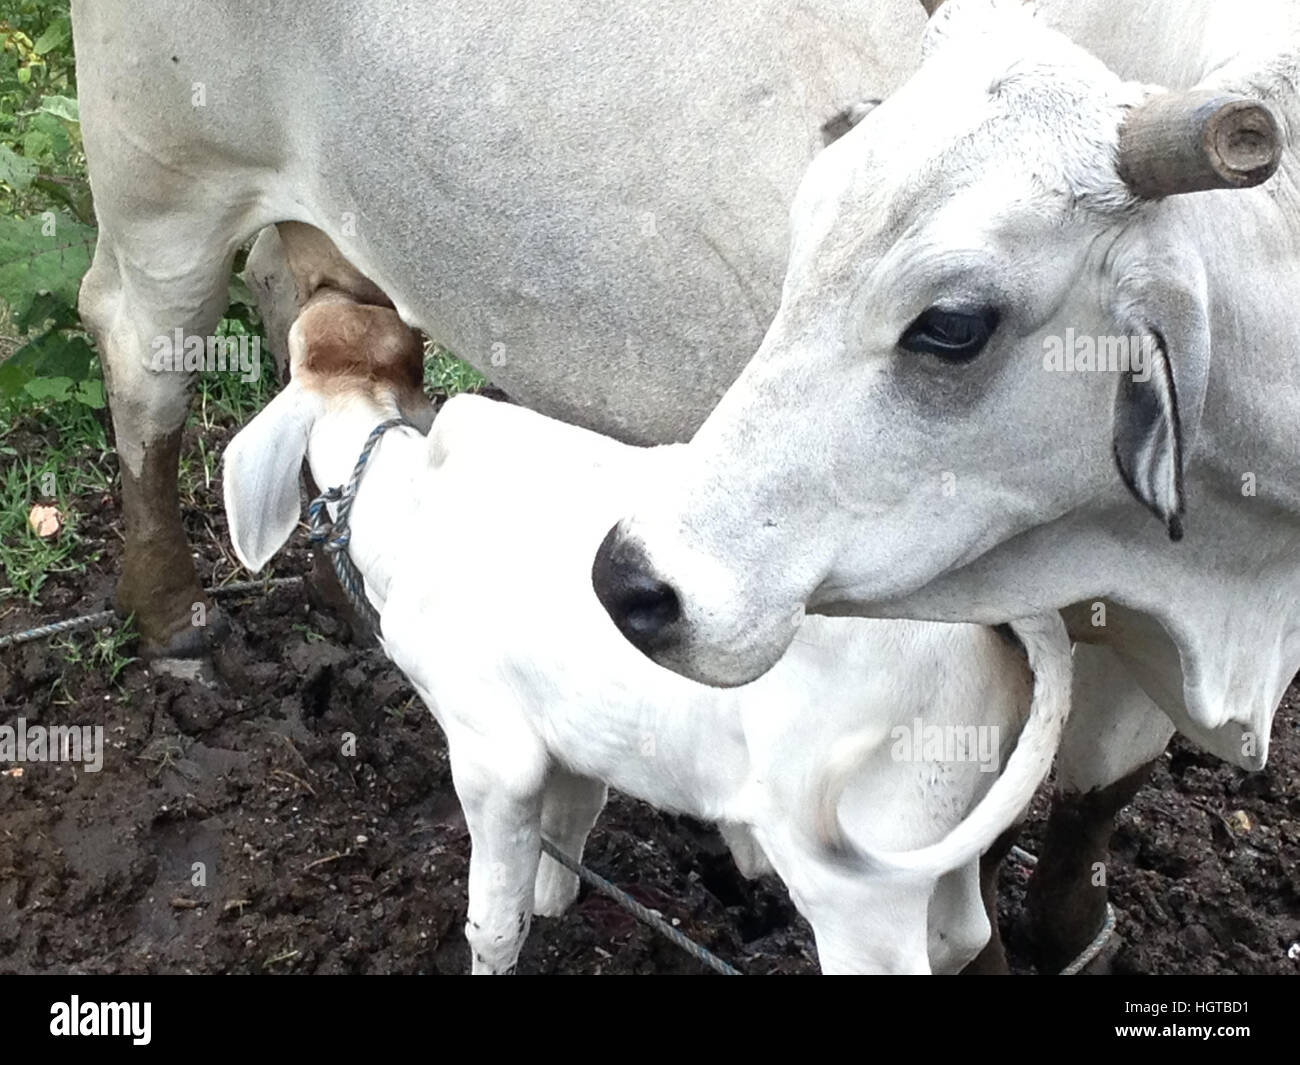 Cow milking her calf - Stock Image